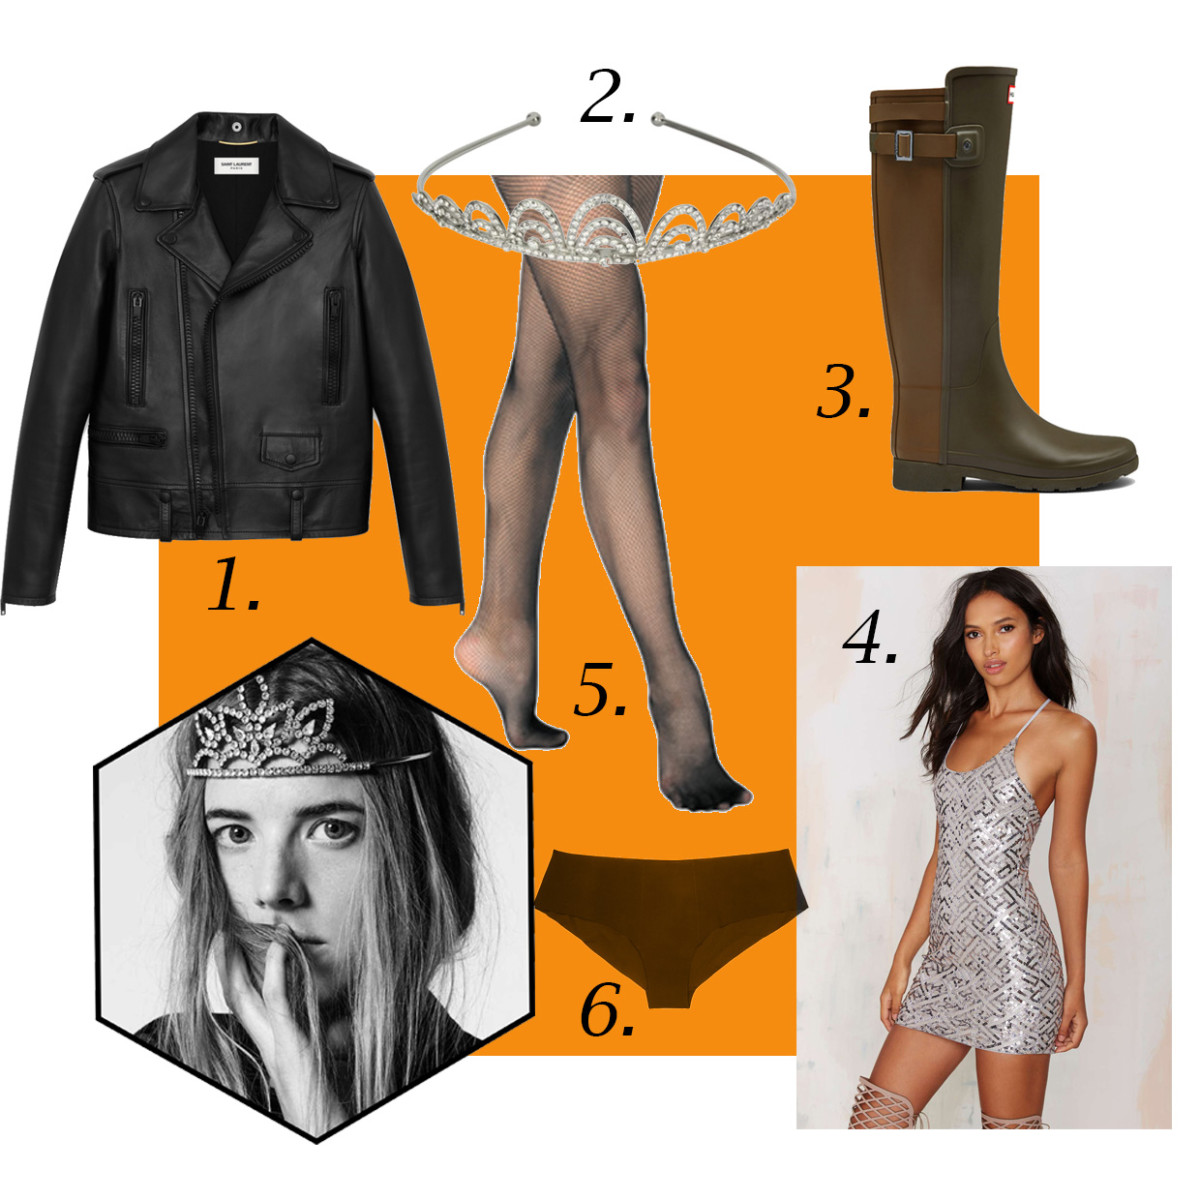 1. Saint Laurent Classic Motorcycle Jacket, $4,990, available at Saint Laurent; 2. Crystal Arches Tiara, $28, available at Target; 3. Hunter Original Refined Back Strap Rain Boots, $195, available at Hunter; 4. WYLDR Pixie Sequin Dress, $78, available at Nasty Gal; 5. La Perla Up Date Stretch-Jersey Briefs, $58, available at Net-a-Porter; 6. Discount Dance Supply Adult Fishnet Tights, $6.75, available at Discount Dance Supply. Photo: Agyness Deyn for Saint Laurent/Hedi Slimane